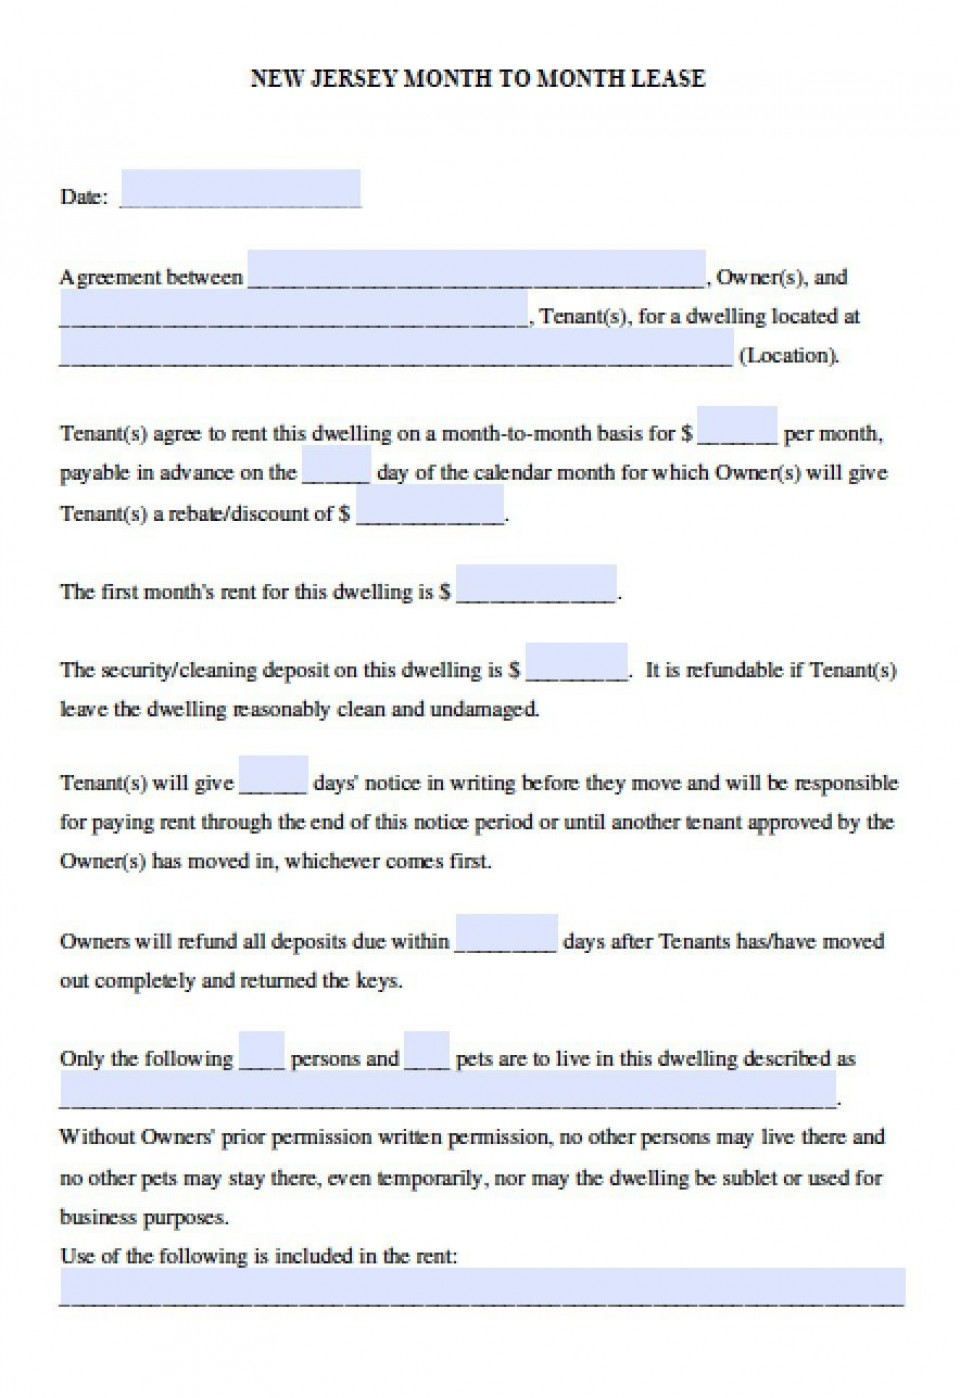 006 Magnificent Generic Rental Lease Agreement Nj Inspiration  Sample960